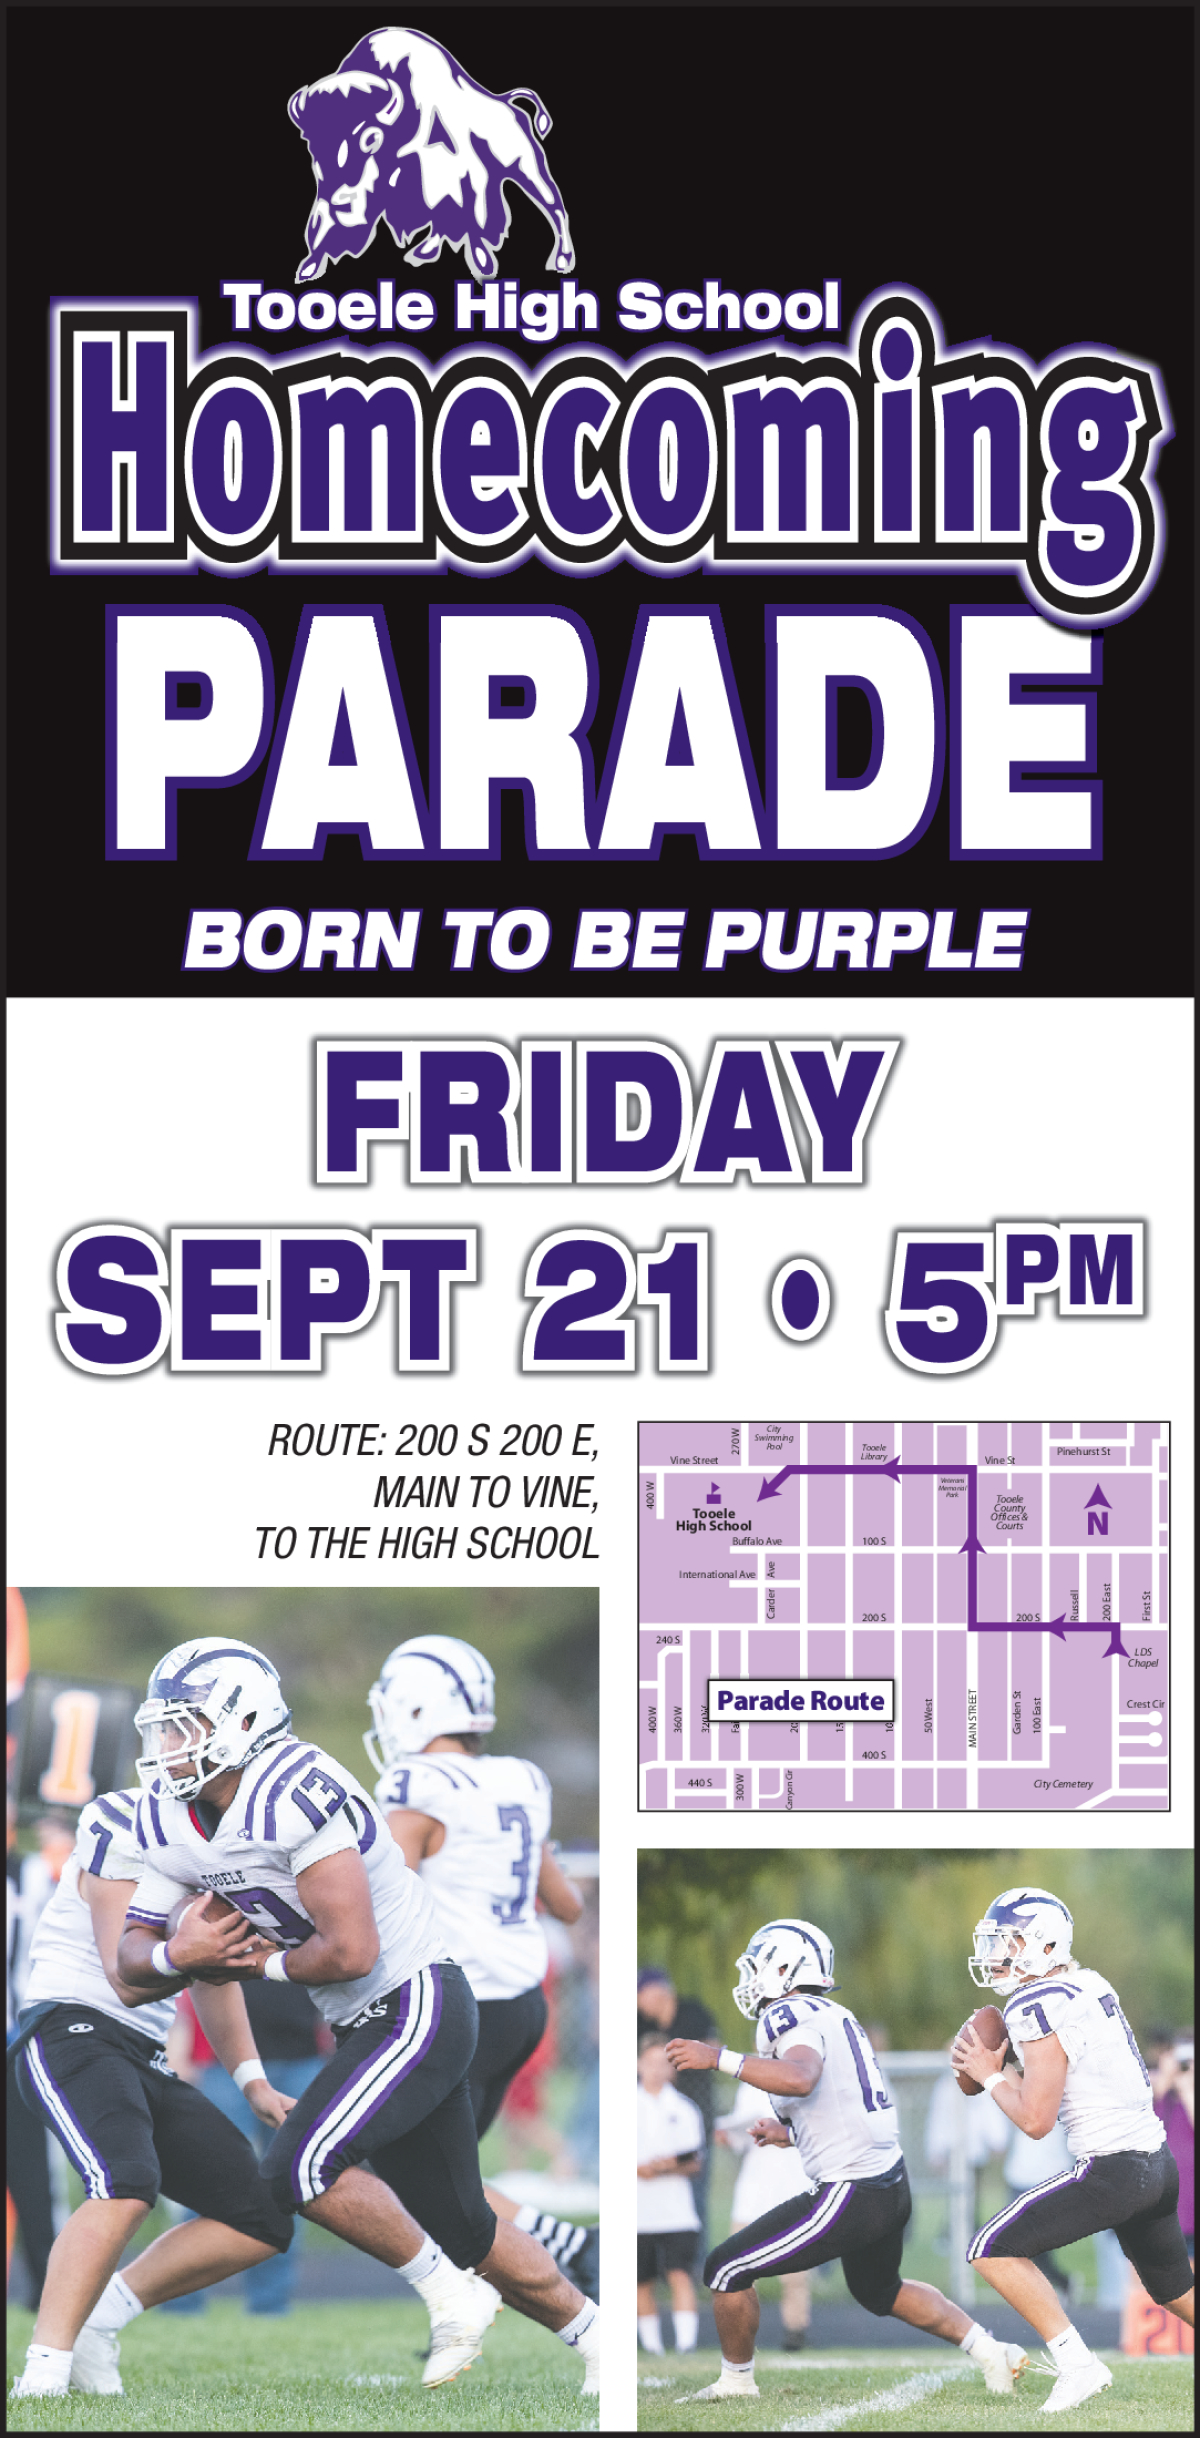 Tooele High School Homecoming Parade @ Main Street Tooele | Tooele | Utah | United States